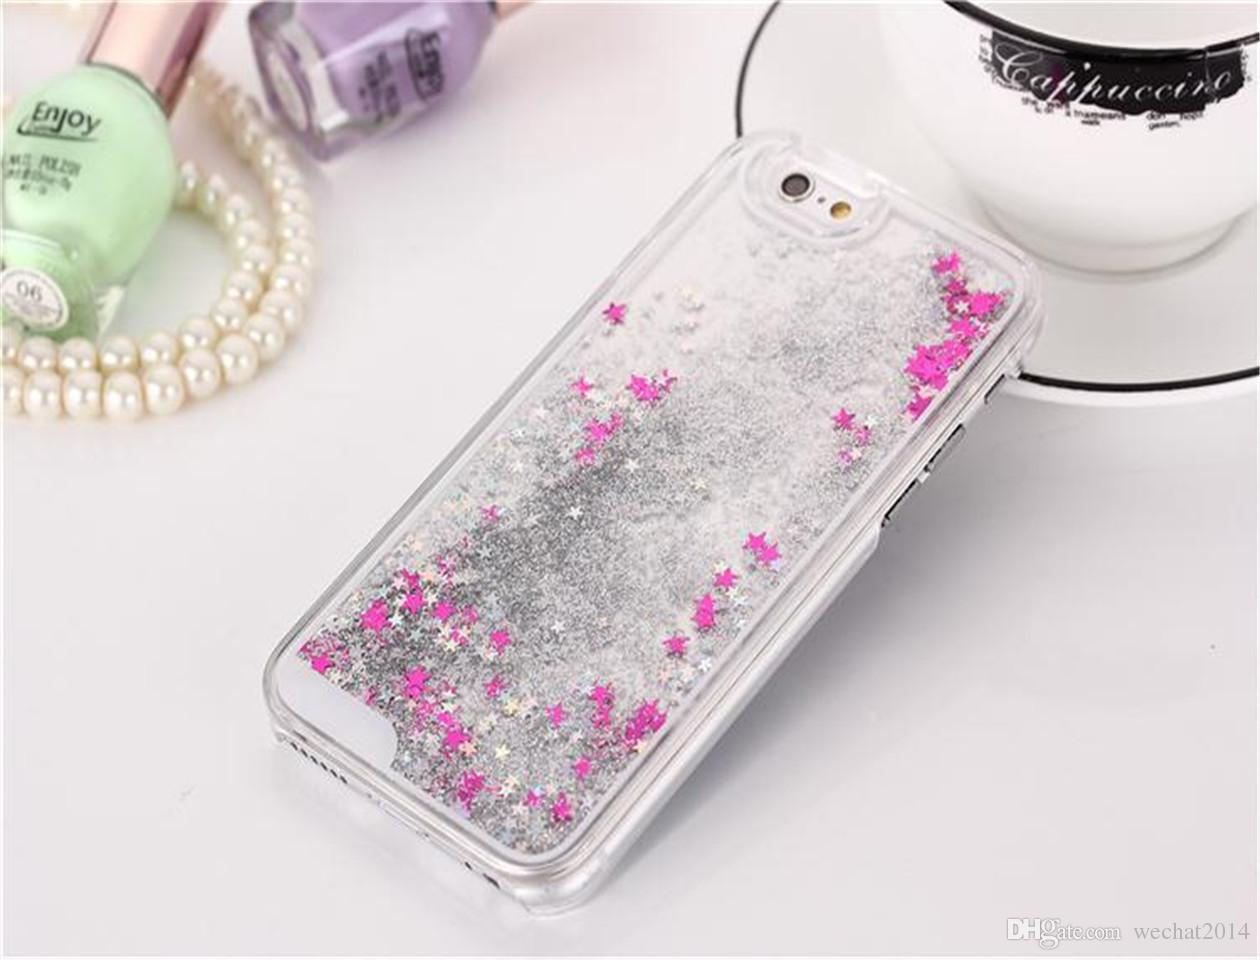 Glitter Bling Stars Dynamic Liquid Hard PC Clear Crystal Case cubierta trasera para iPhone 4S 5 5S 6 6s más Galaxy S5 S6 Note 2 3 4